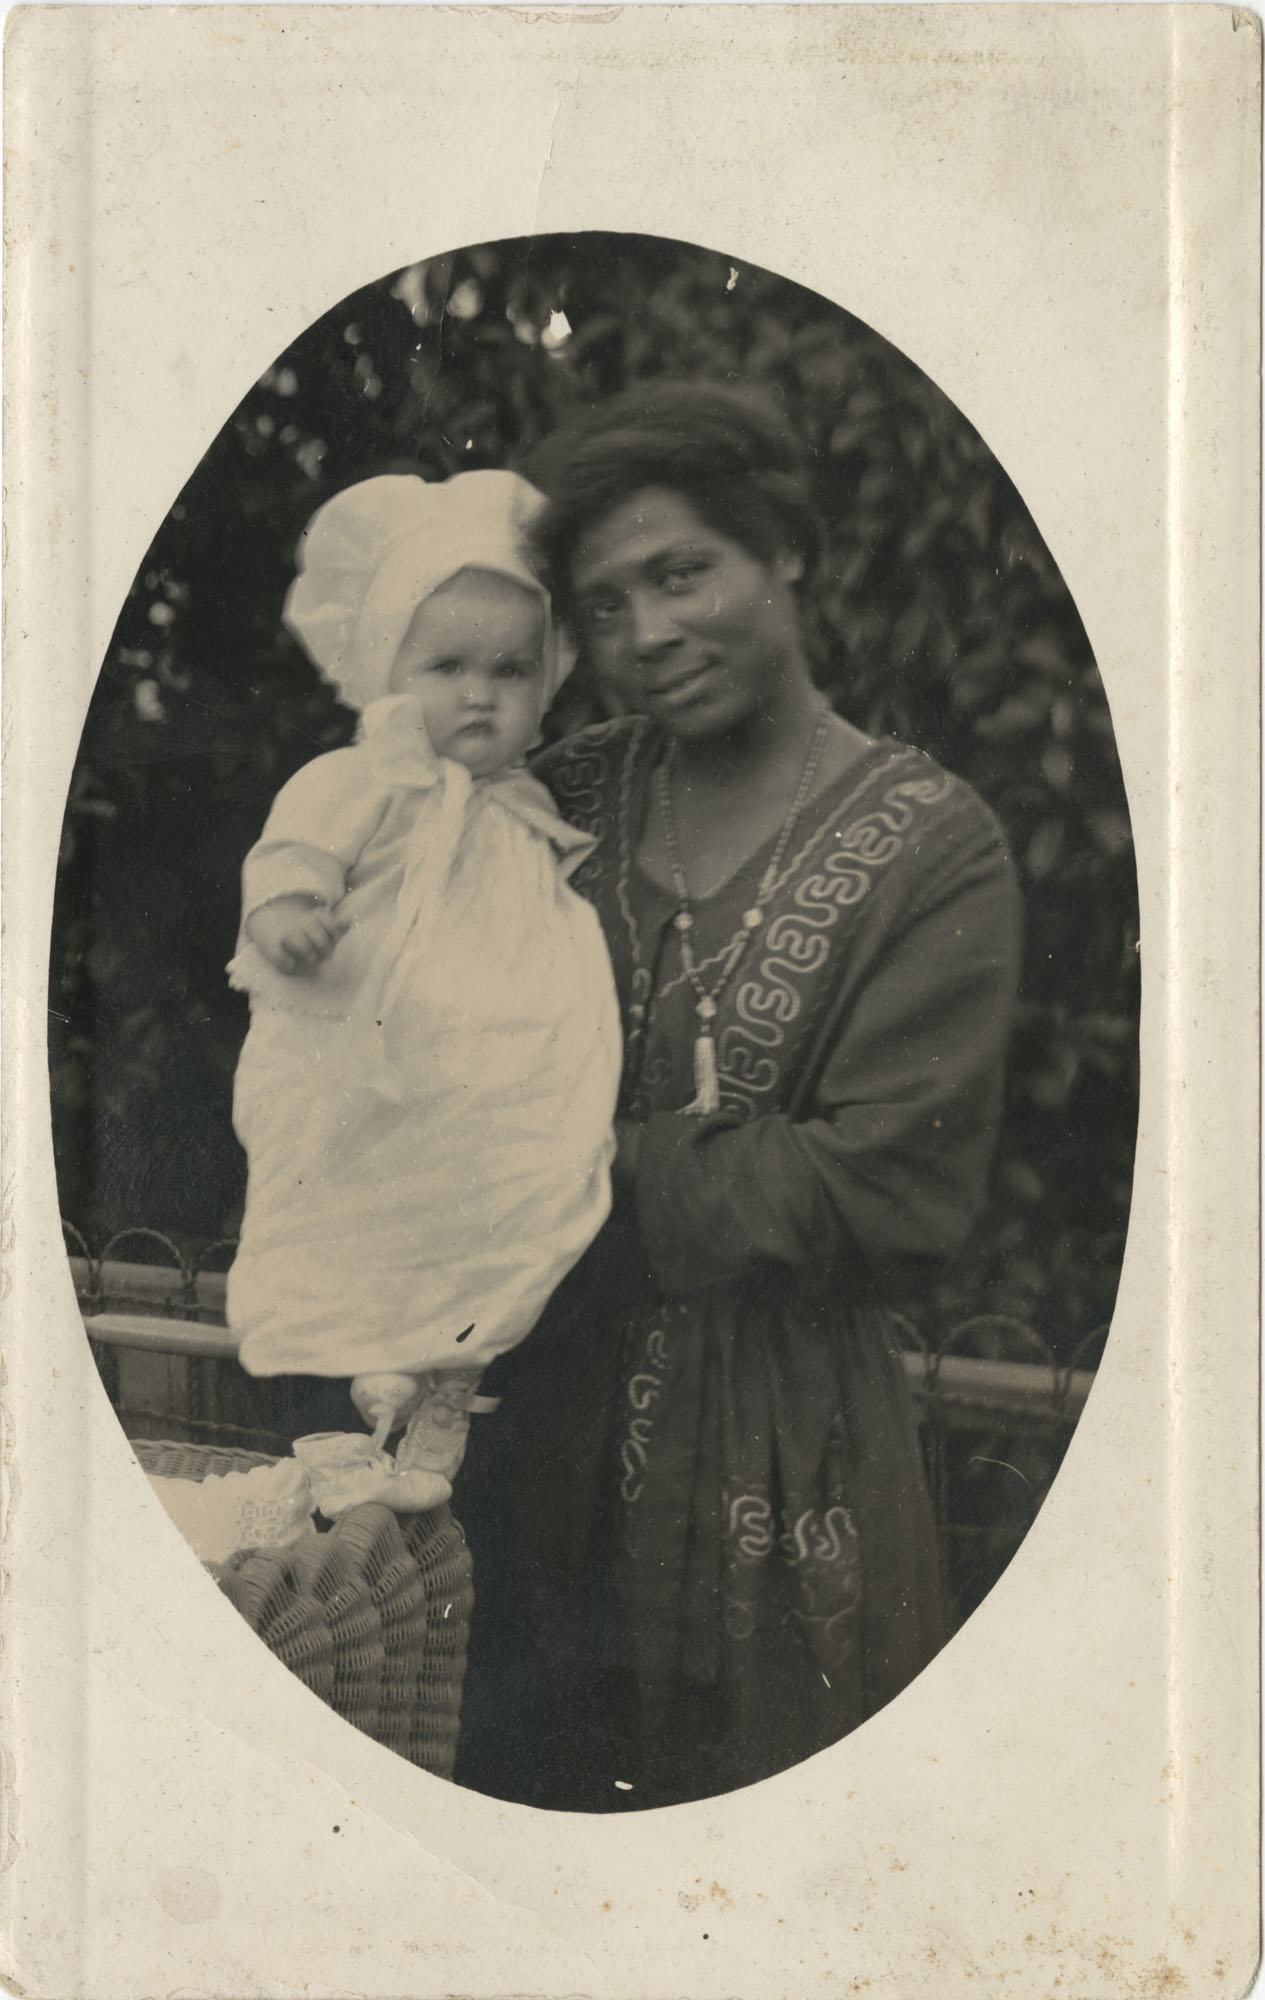 Postcard Photo of an African American Woman with Infant